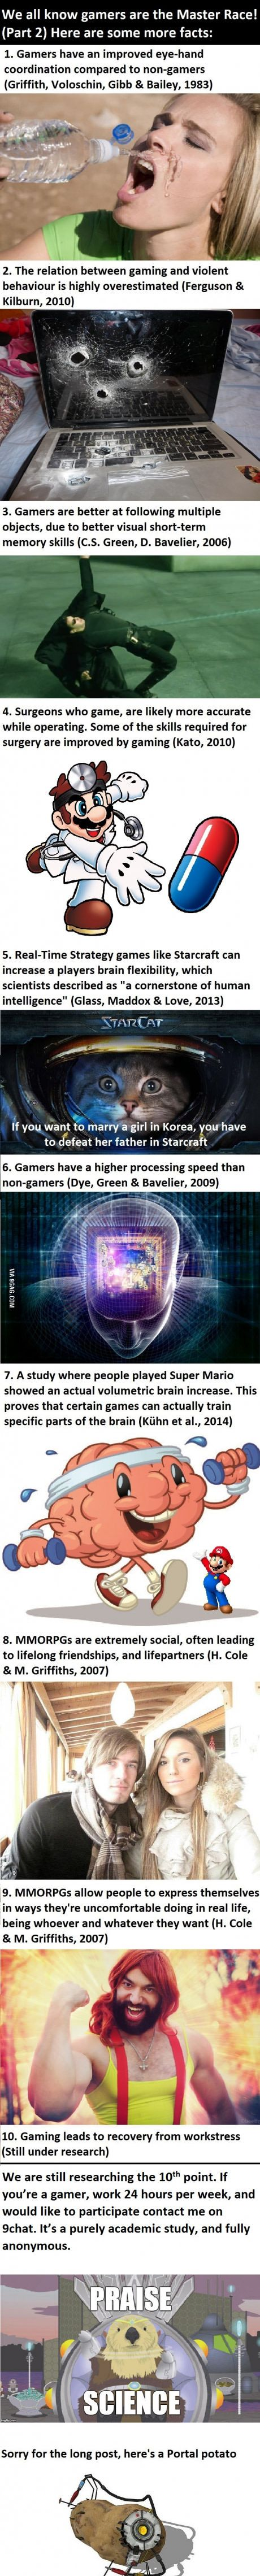 Power of Gaming (Part 2)